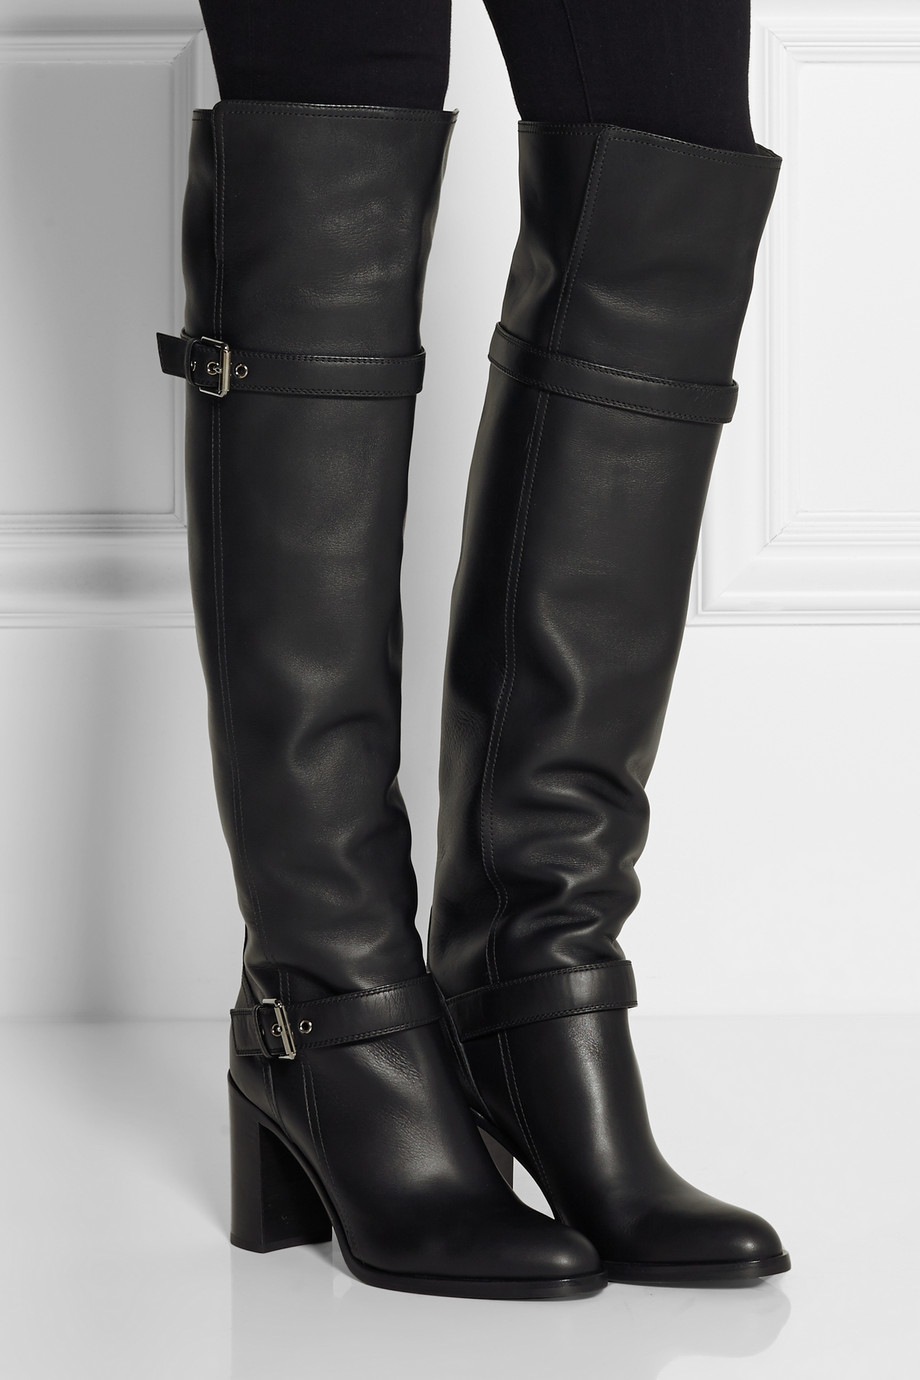 Over The Knee Leather Boots - Cr Boot